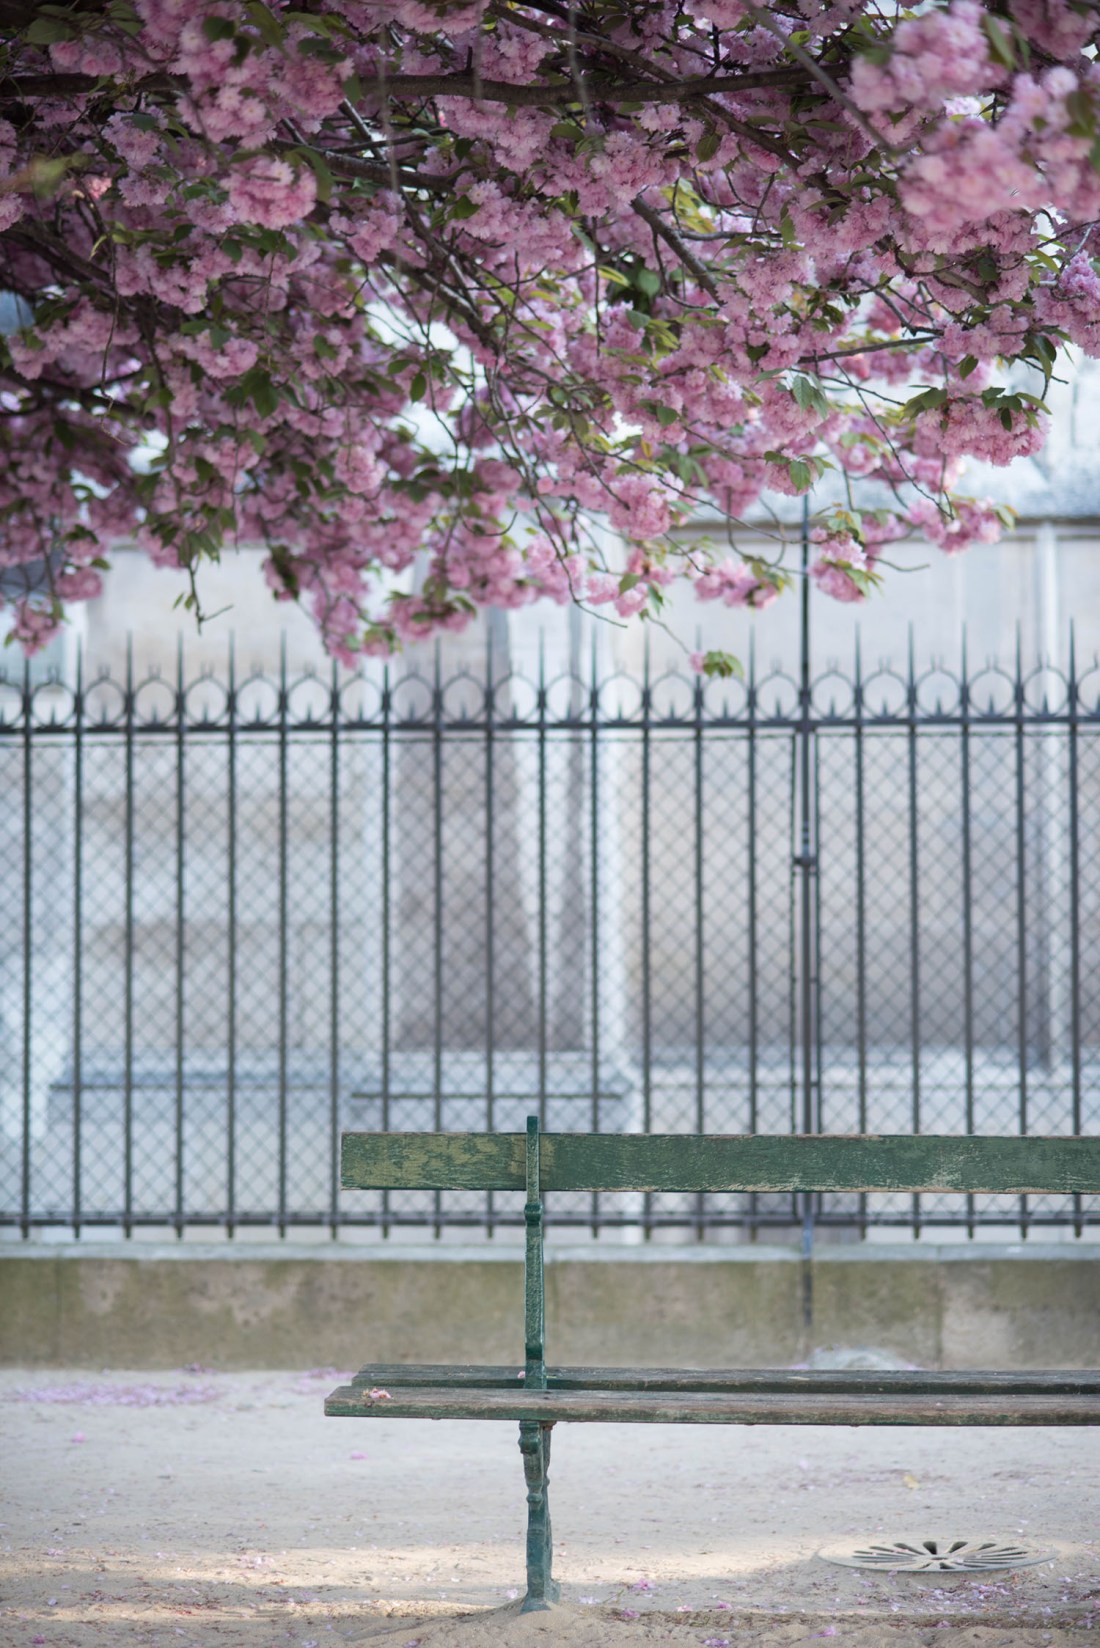 A green bench under a cherry blossom tree in Paris, captured by travel blogger Cee Fardoe of Coco & Vera